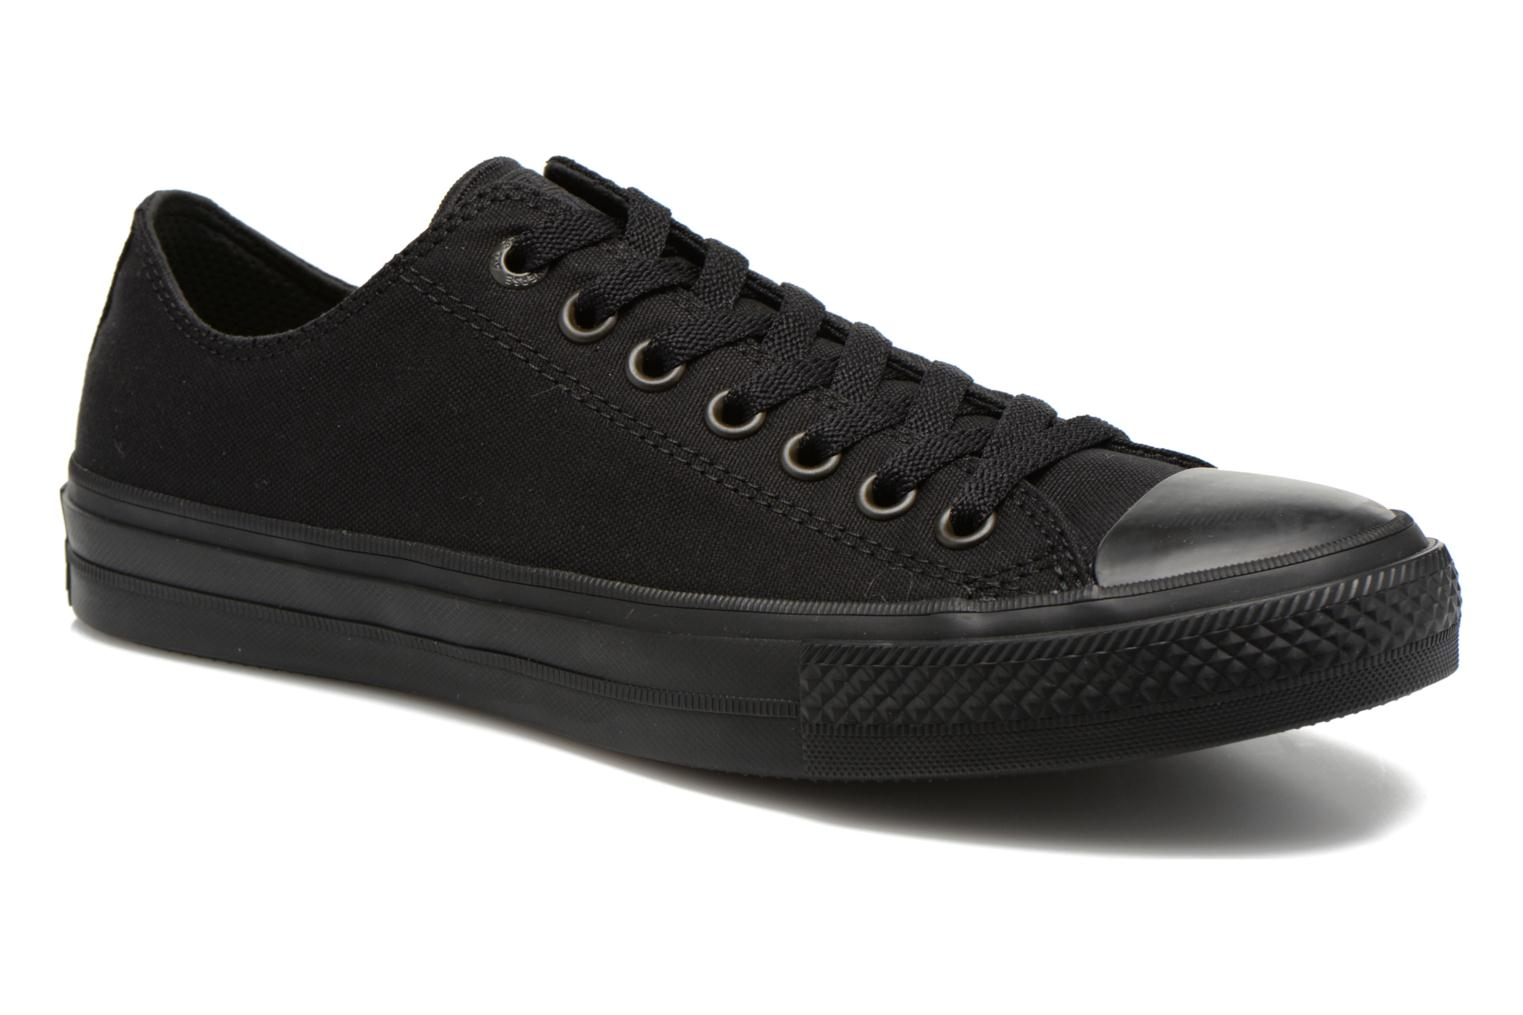 Chuck Taylor All Star II Ox M Black/black/black